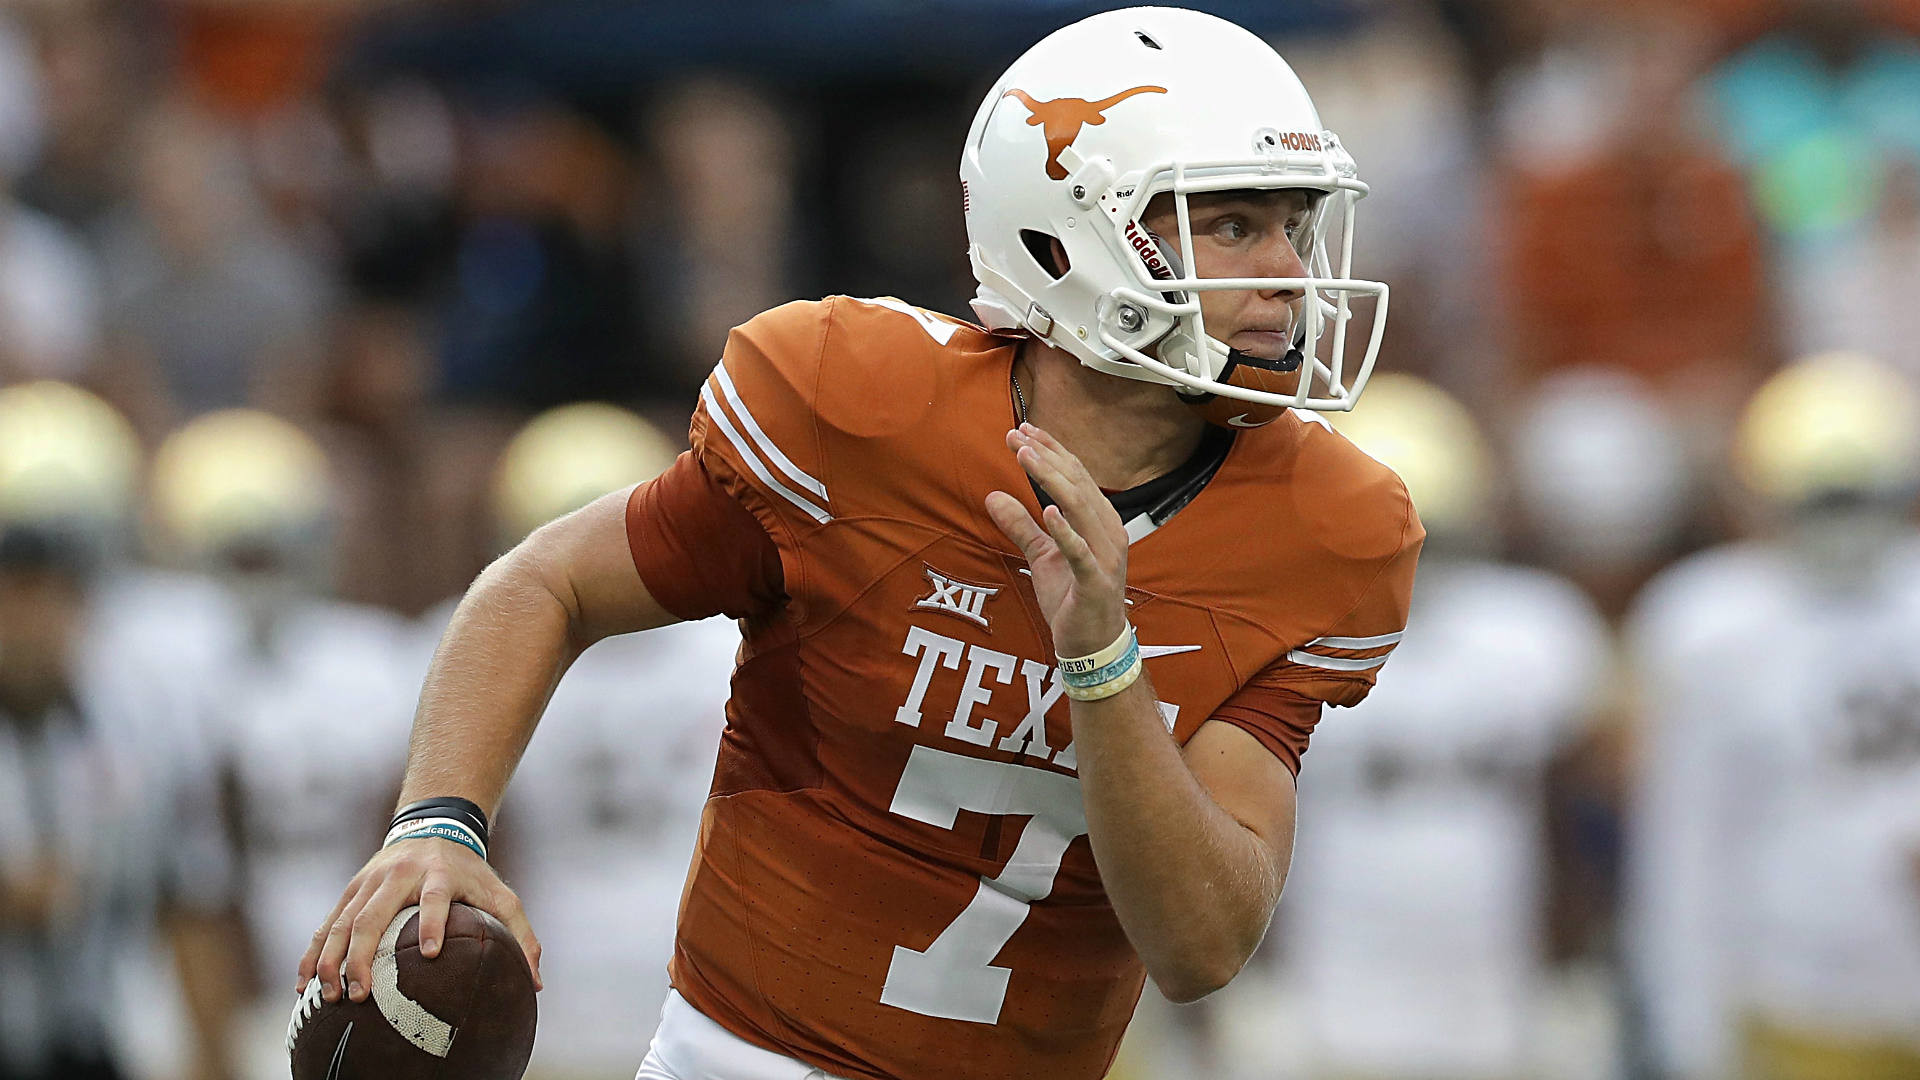 1920x1080 Texas football preview: Longhorns 2017 schedule, roster and three things to  watch | NCAA Football | Sporting News